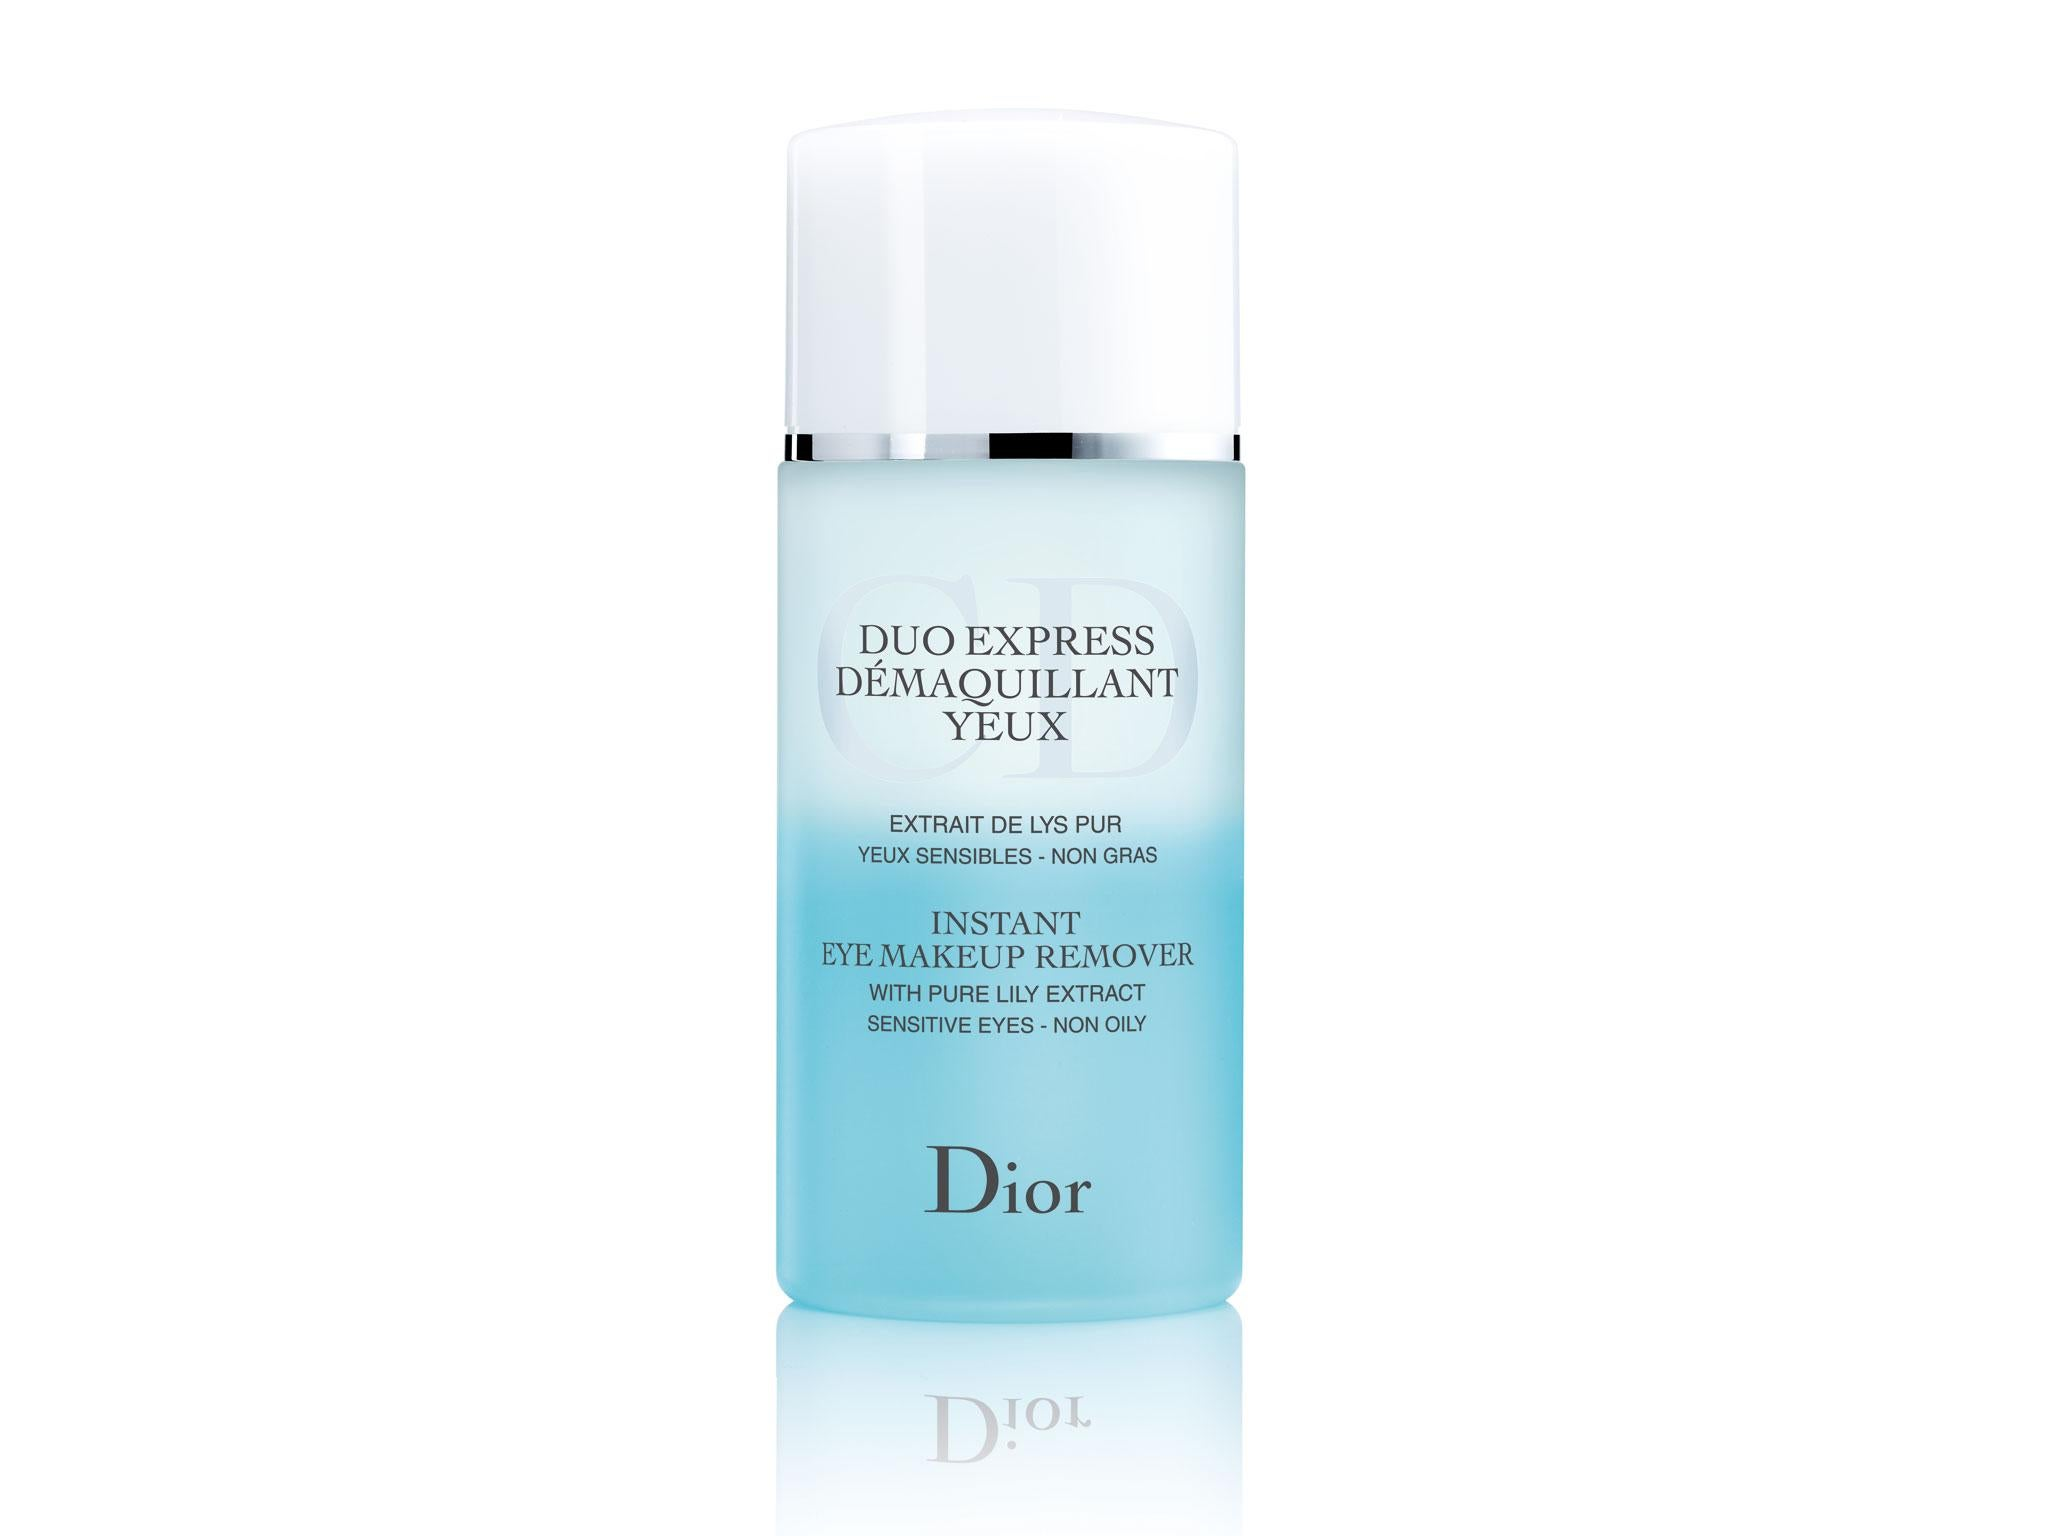 10 Best Make Up Removers The Independent